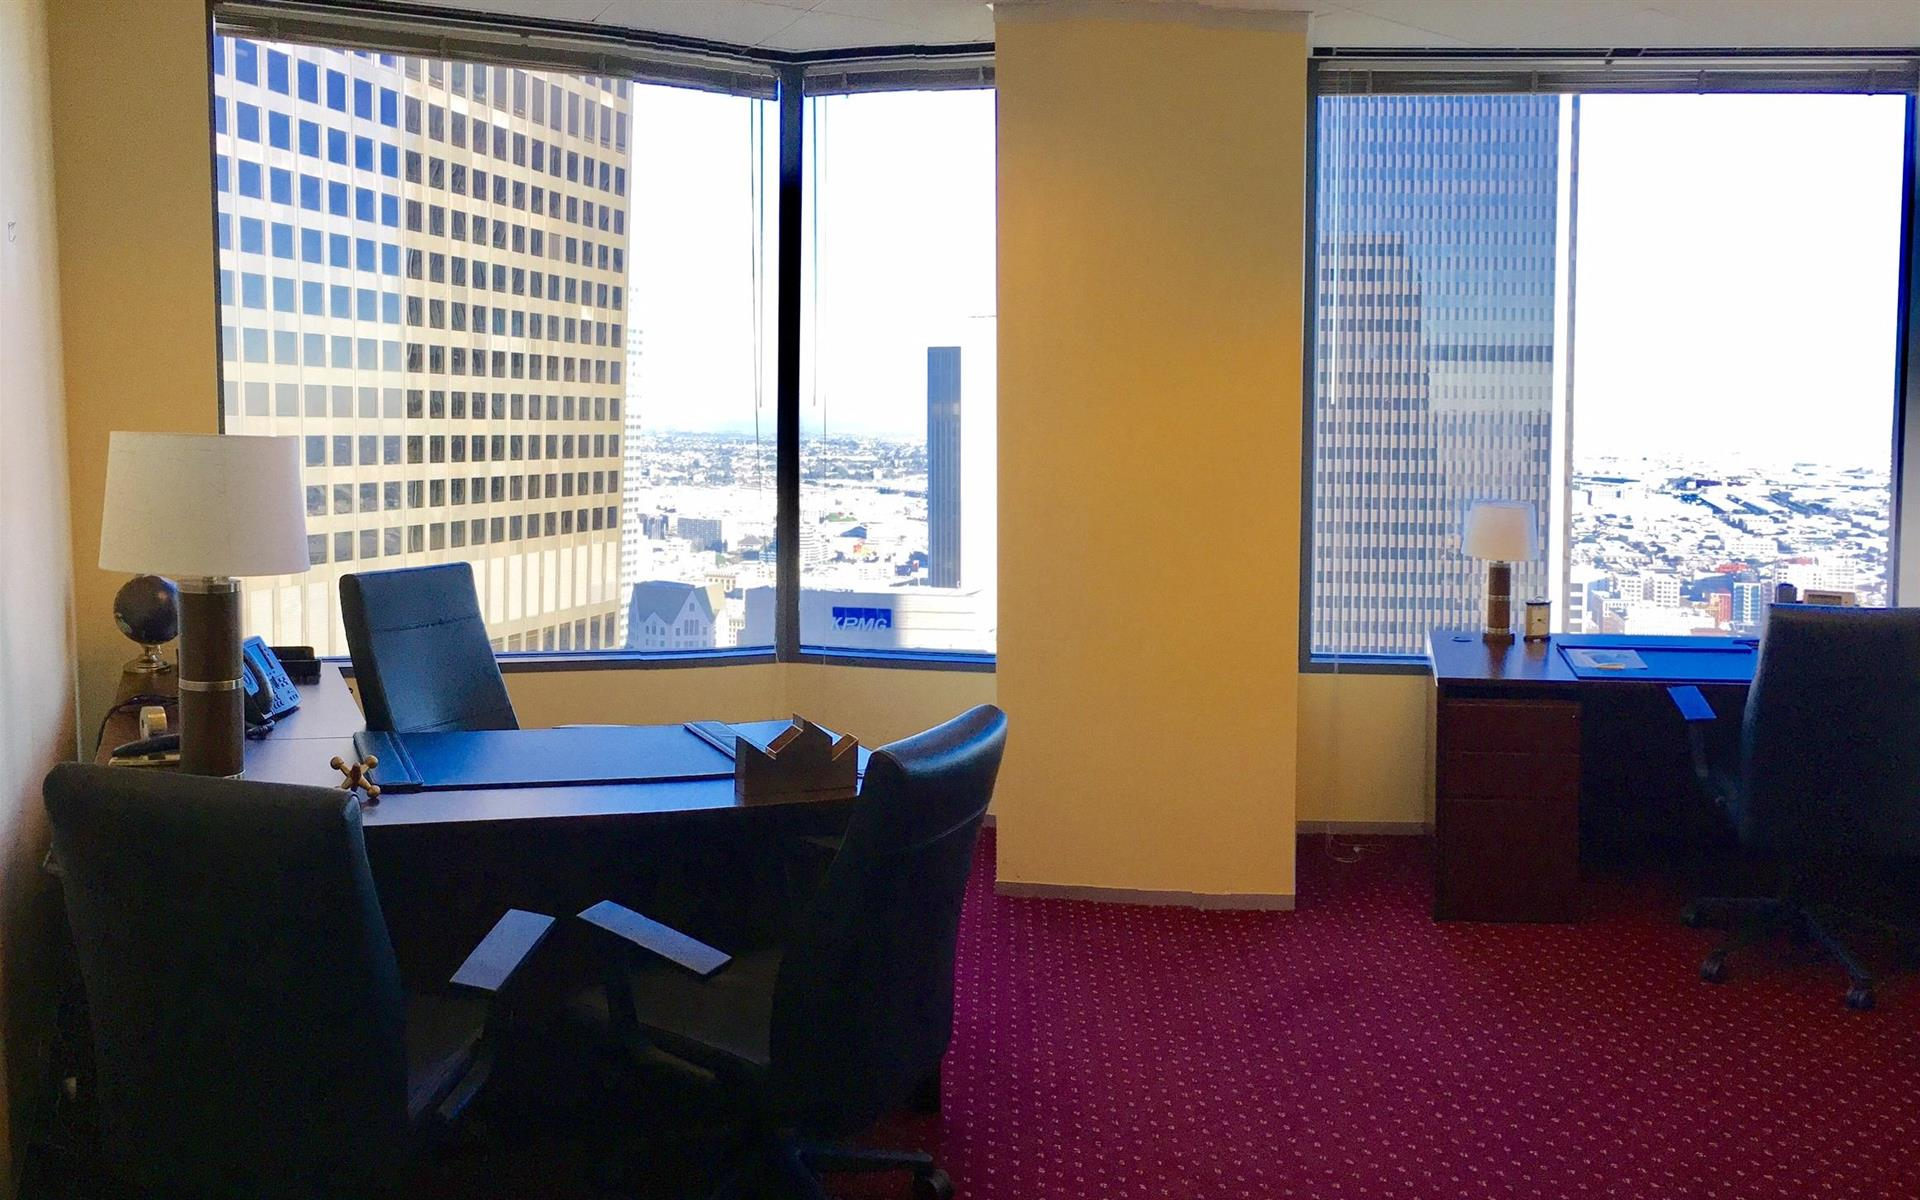 Servcorp - Downtown Los Angeles - 3 Person Office w/ View